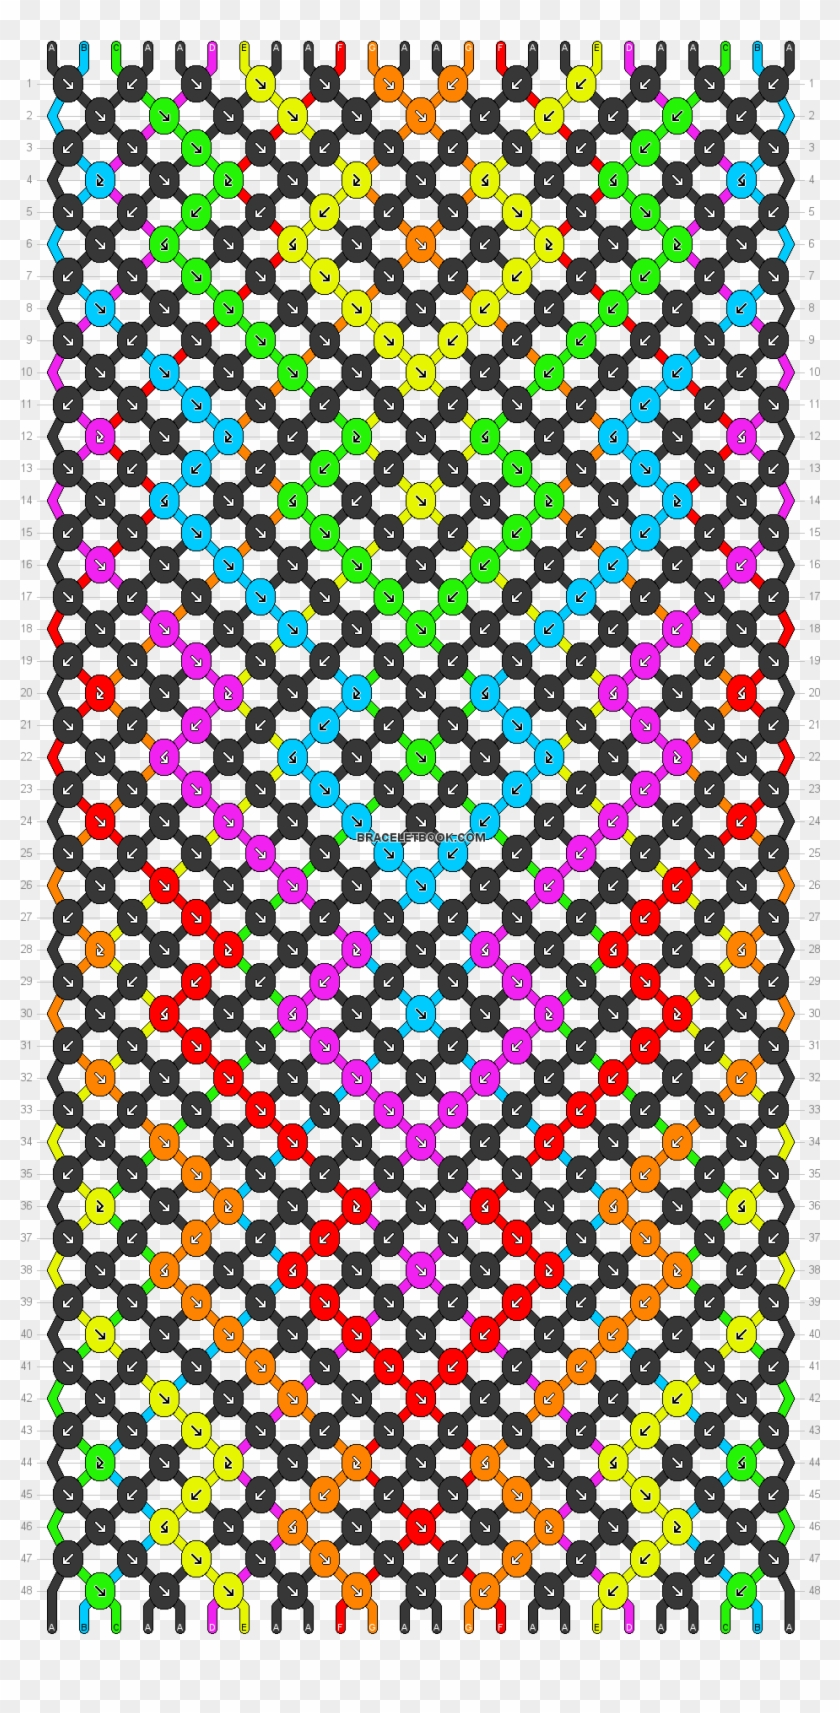 Download Preview Pattern Friendship Bracelet 12 Strings Hd Png Download 962x1896 30173 Pngfind